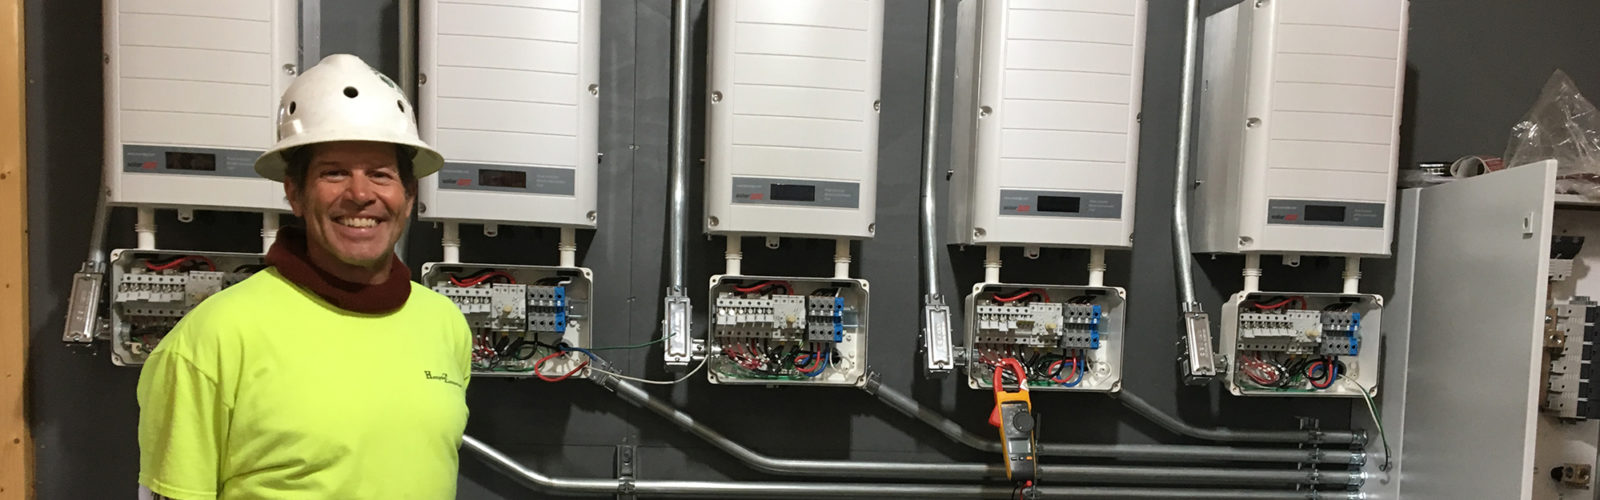 Pv Squared Solar Energy Solutions For Homes And Businesses In Power Wiring Done Right